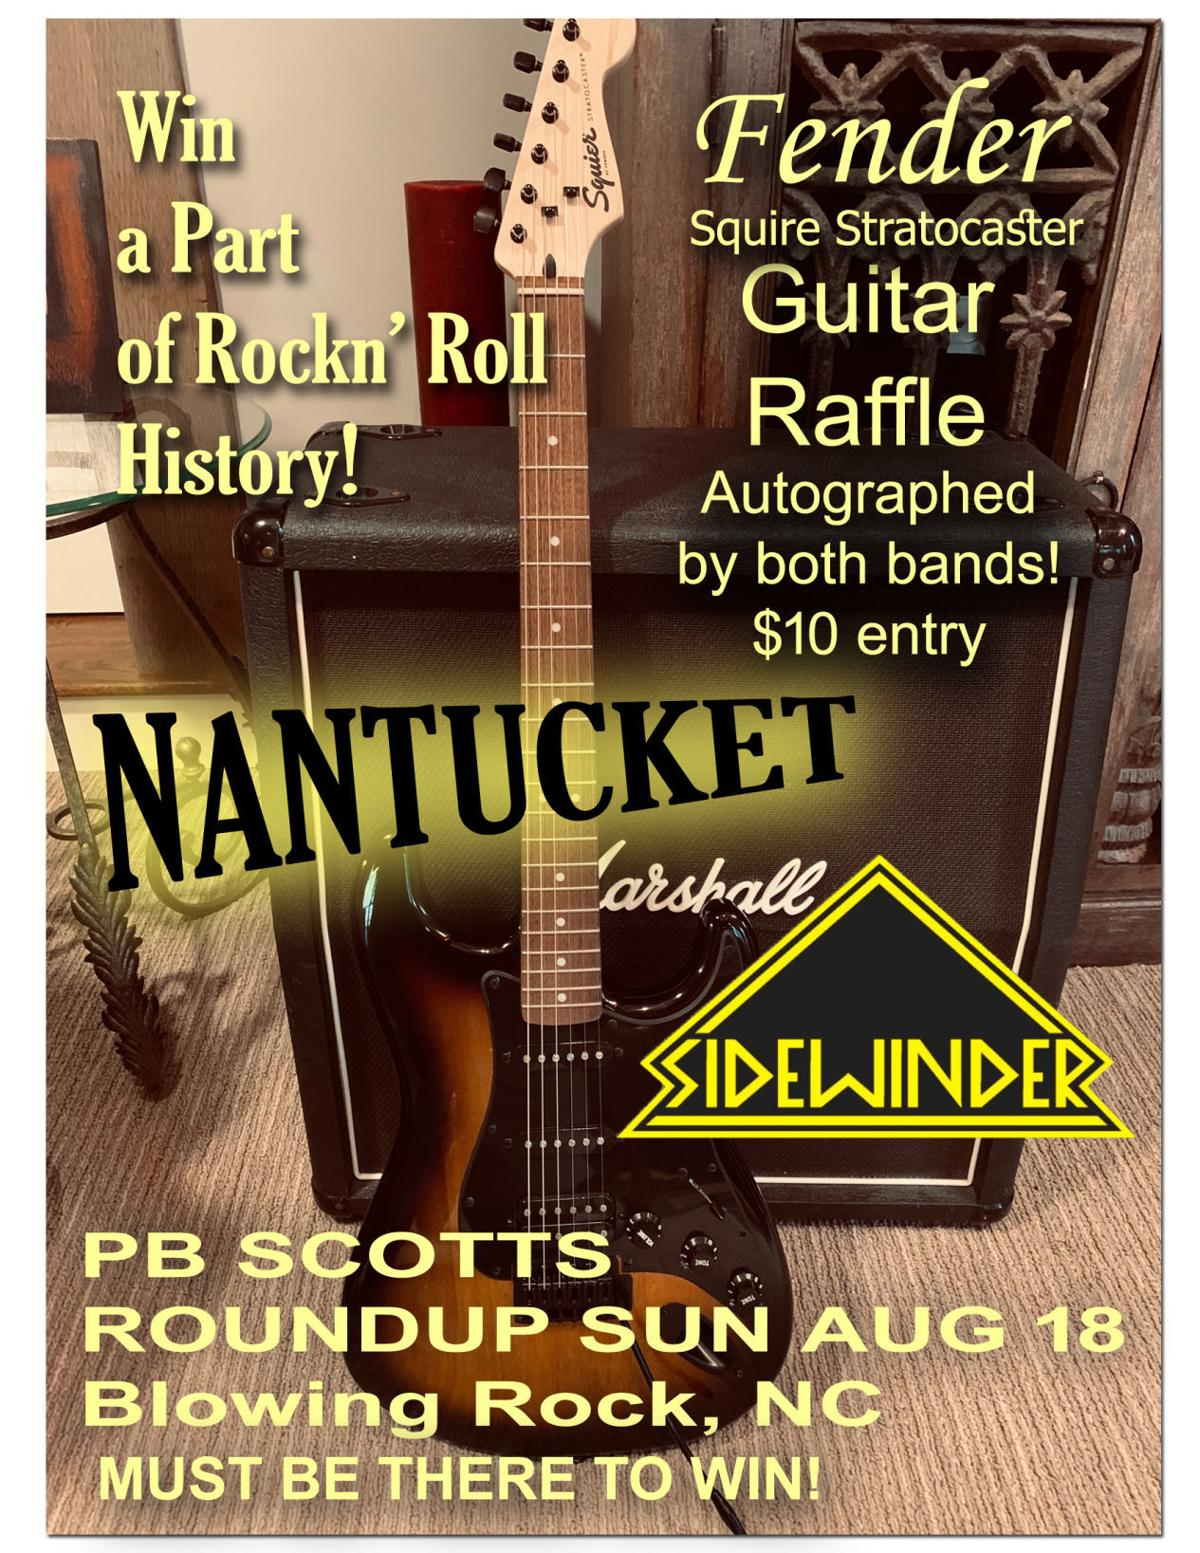 Enter the raffle to win an autographed guitar from Nantucket and Sidewinder.